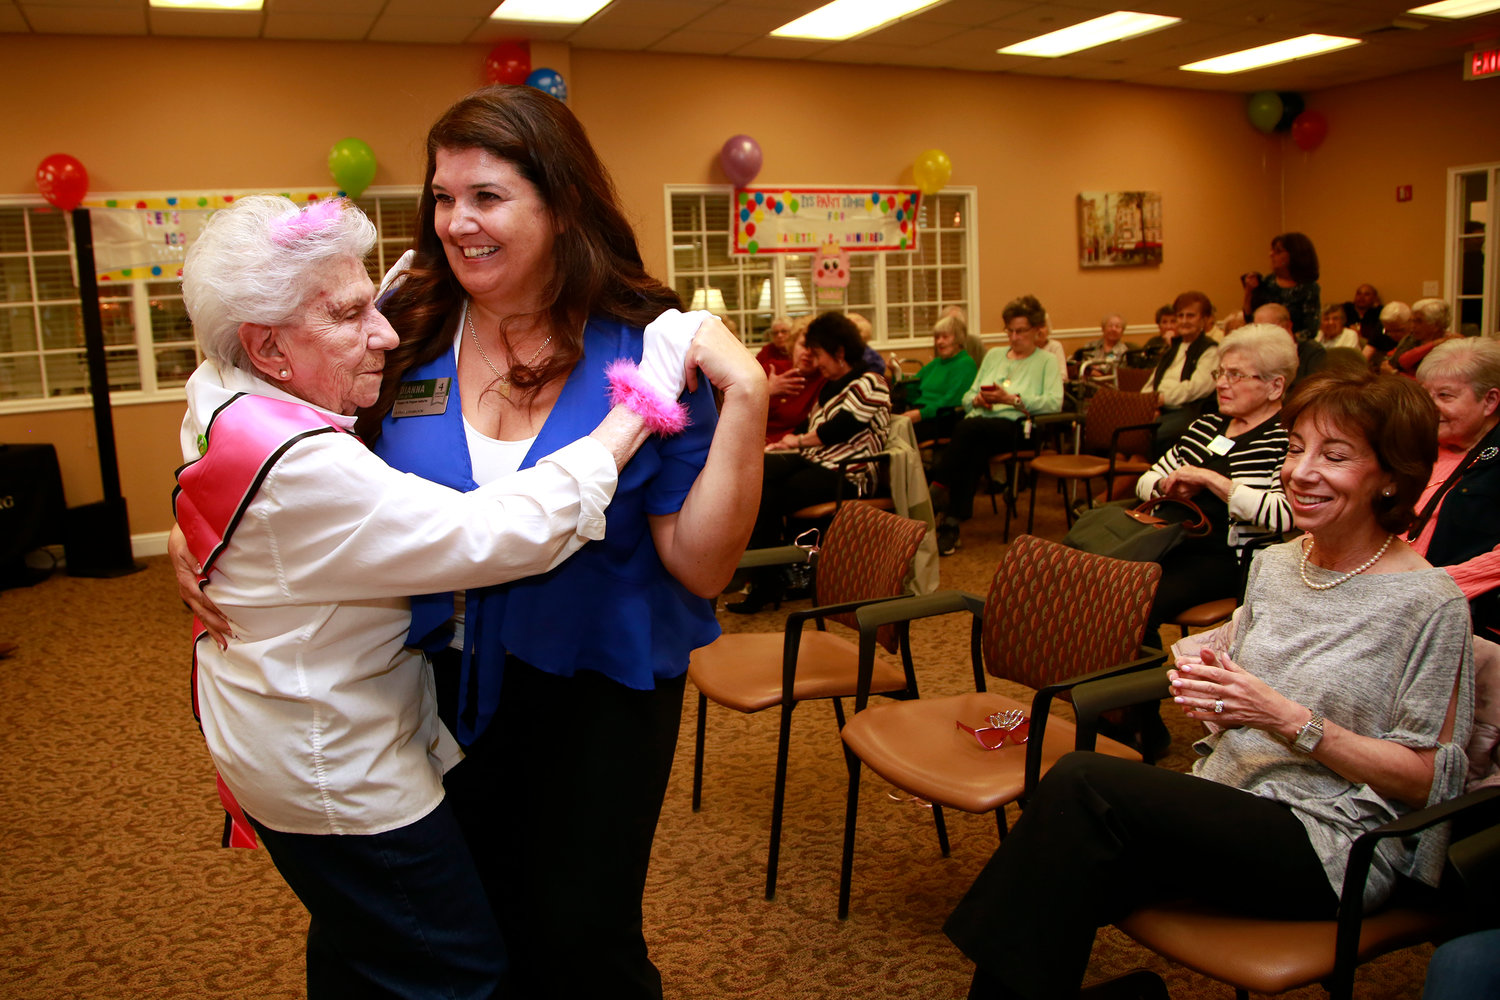 Fishman hit the dance floor with Dianna Viglietta, the Engage Life program director for the Atria.